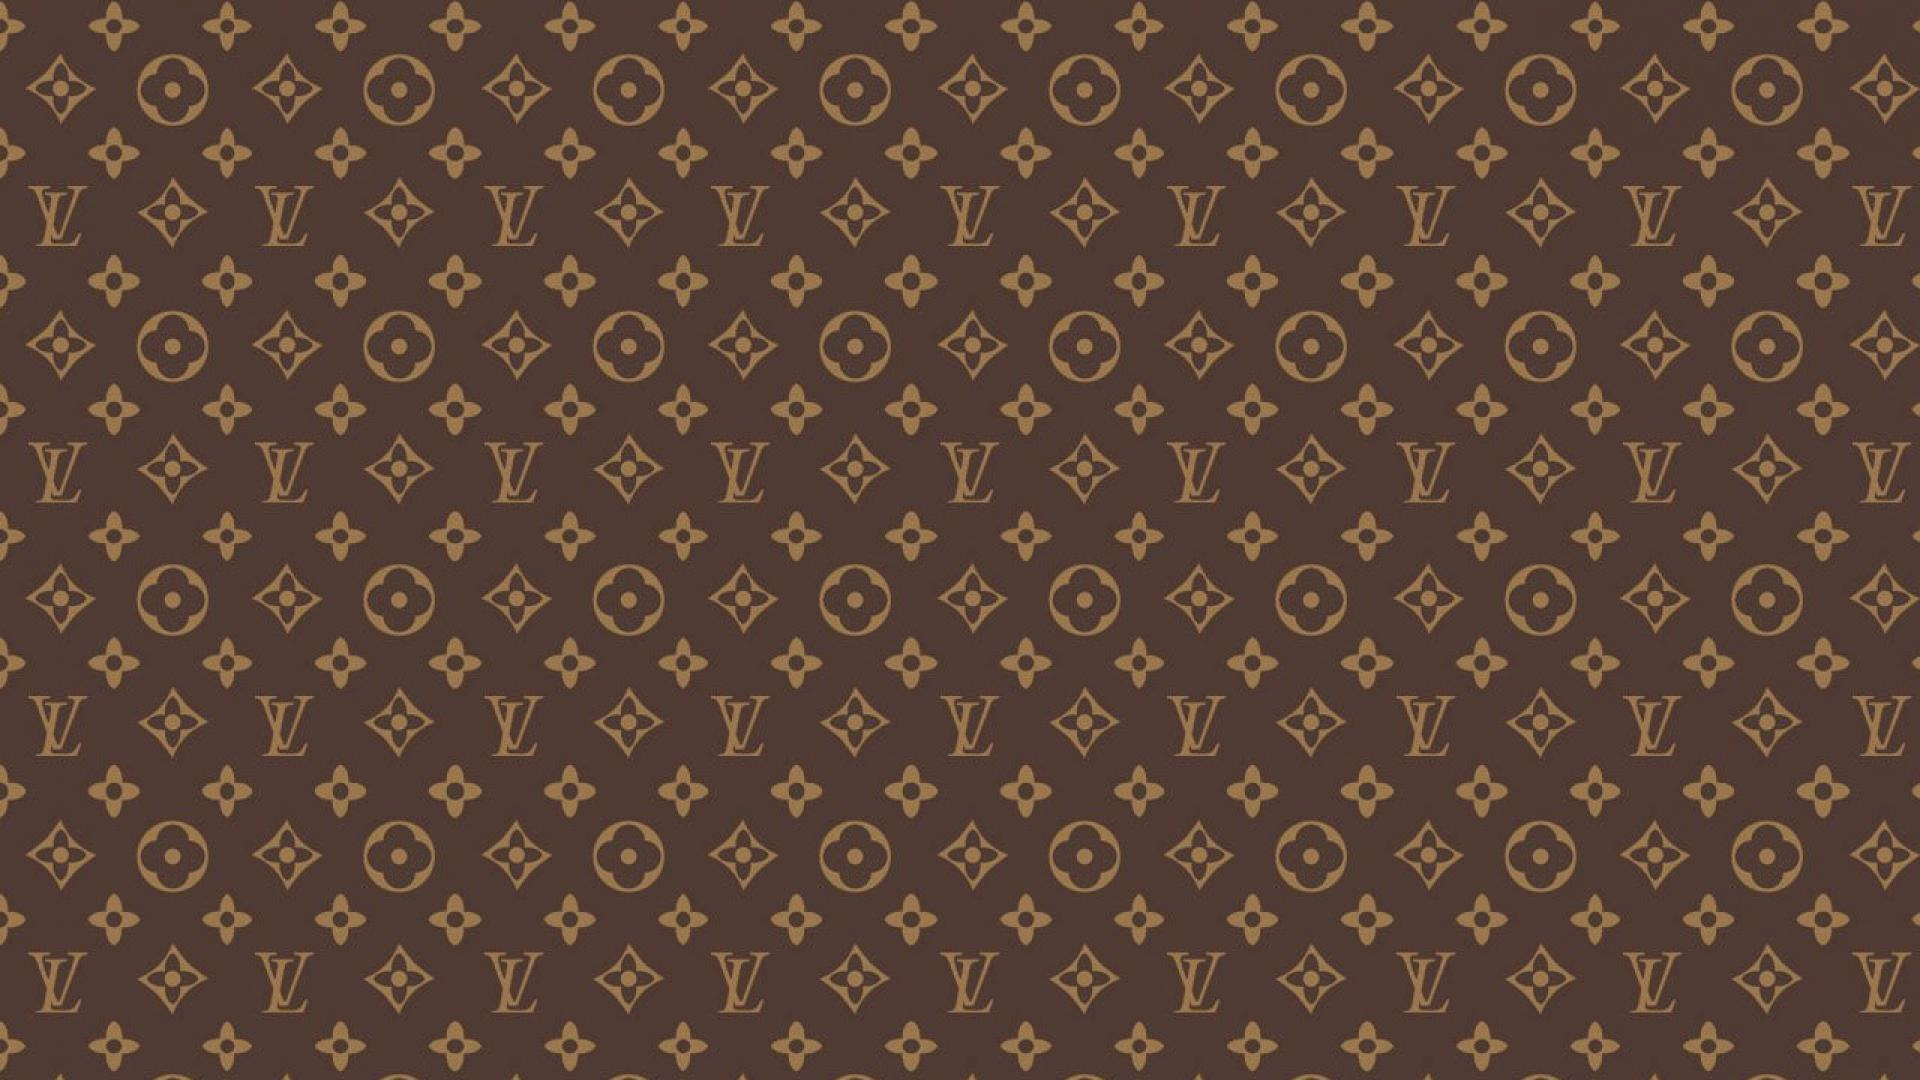 Louis vuitton name wallpaper